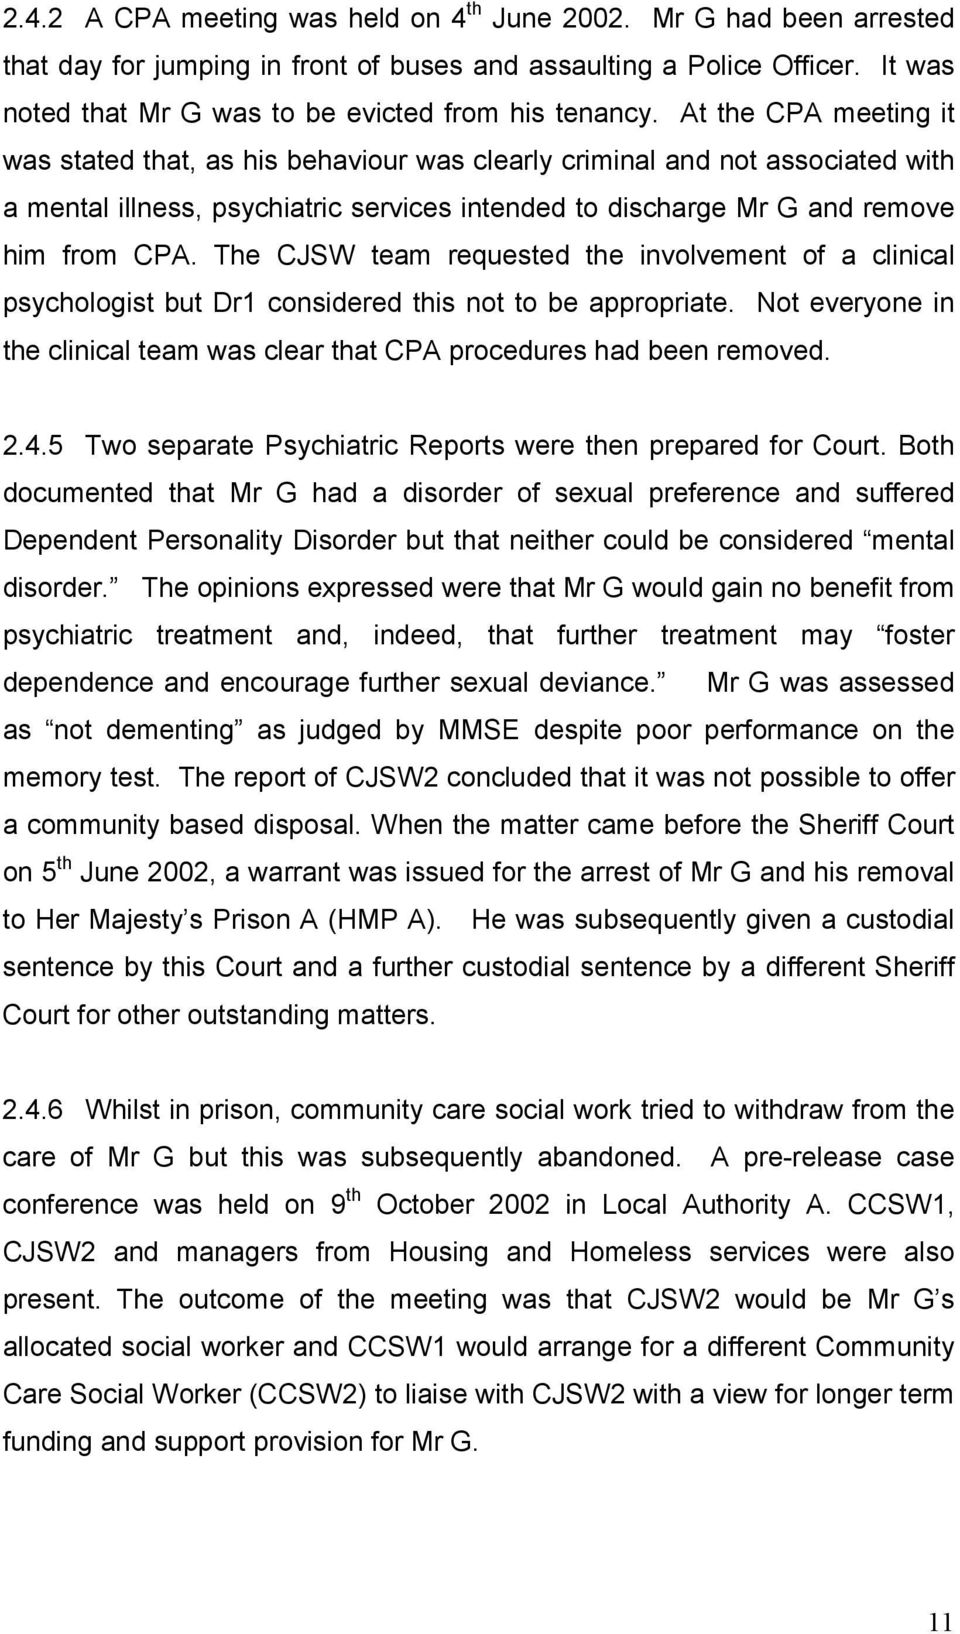 At the CPA meeting it was stated that, as his behaviour was clearly criminal and not associated with a mental illness, psychiatric services intended to discharge Mr G and remove him from CPA.